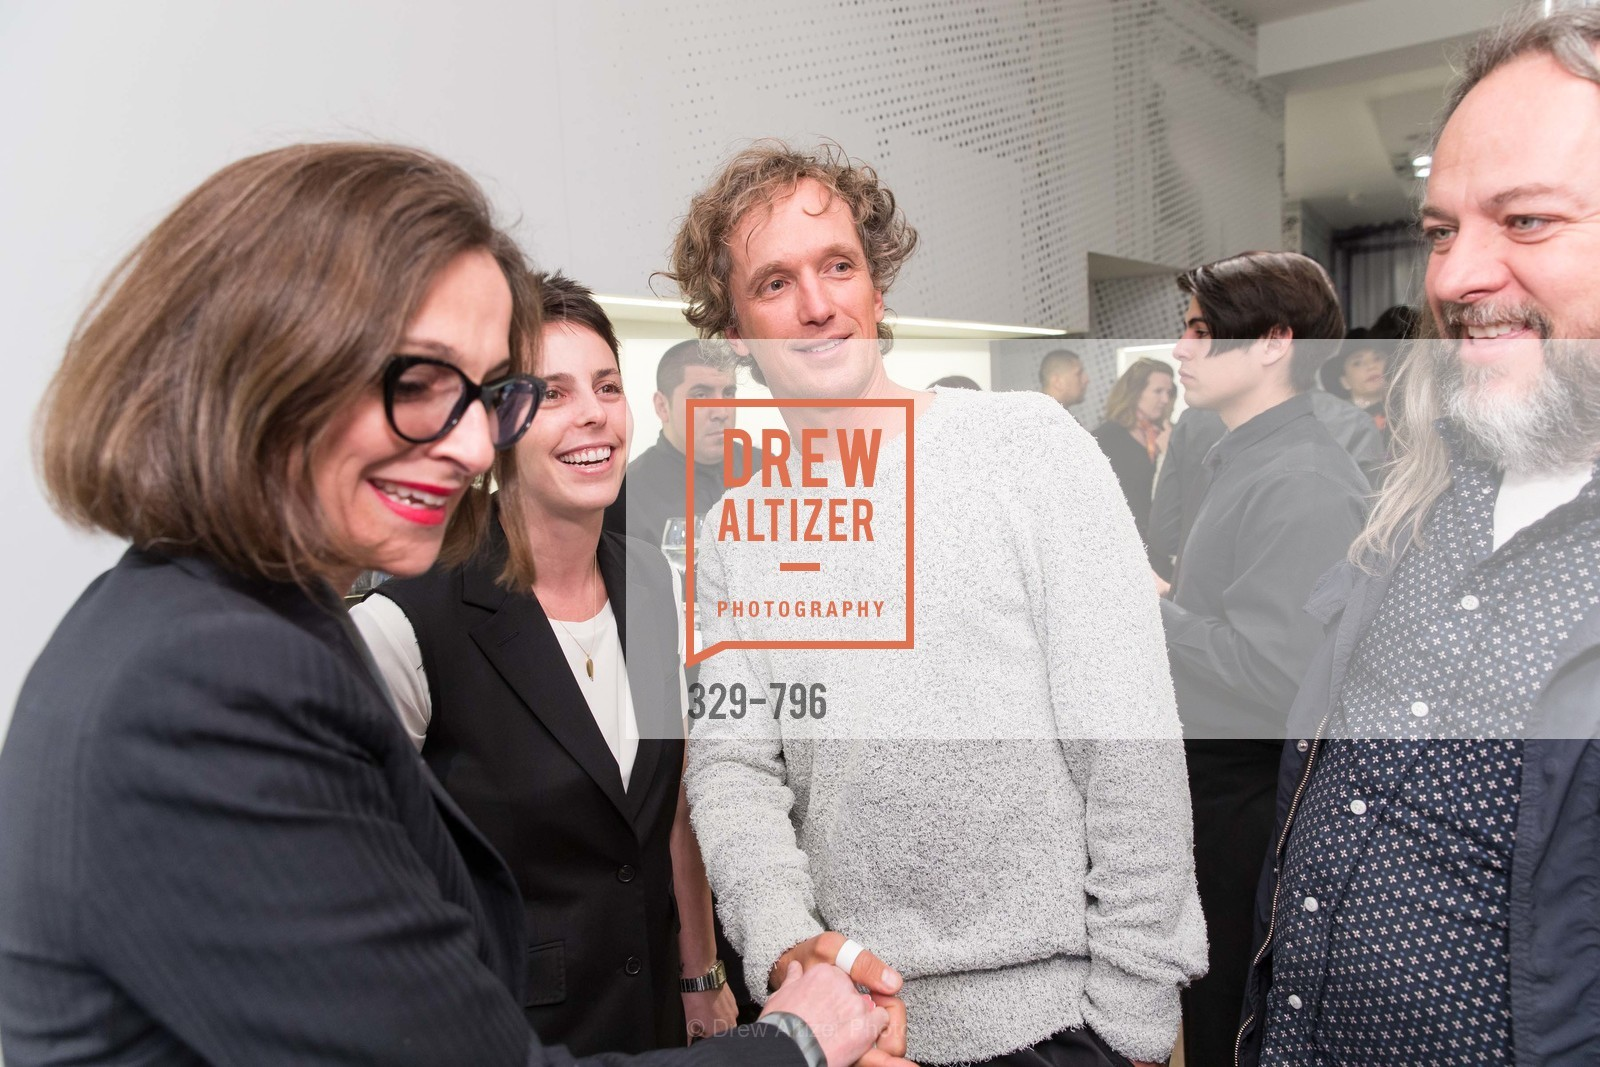 Sarah Thornton, Jessica Siverman, Yves Behar, Rich Hansen, MAISON MARGIELA San Francisco Boutique Grand Opening Event, US, April 23rd, 2015,Drew Altizer, Drew Altizer Photography, full-service agency, private events, San Francisco photographer, photographer california